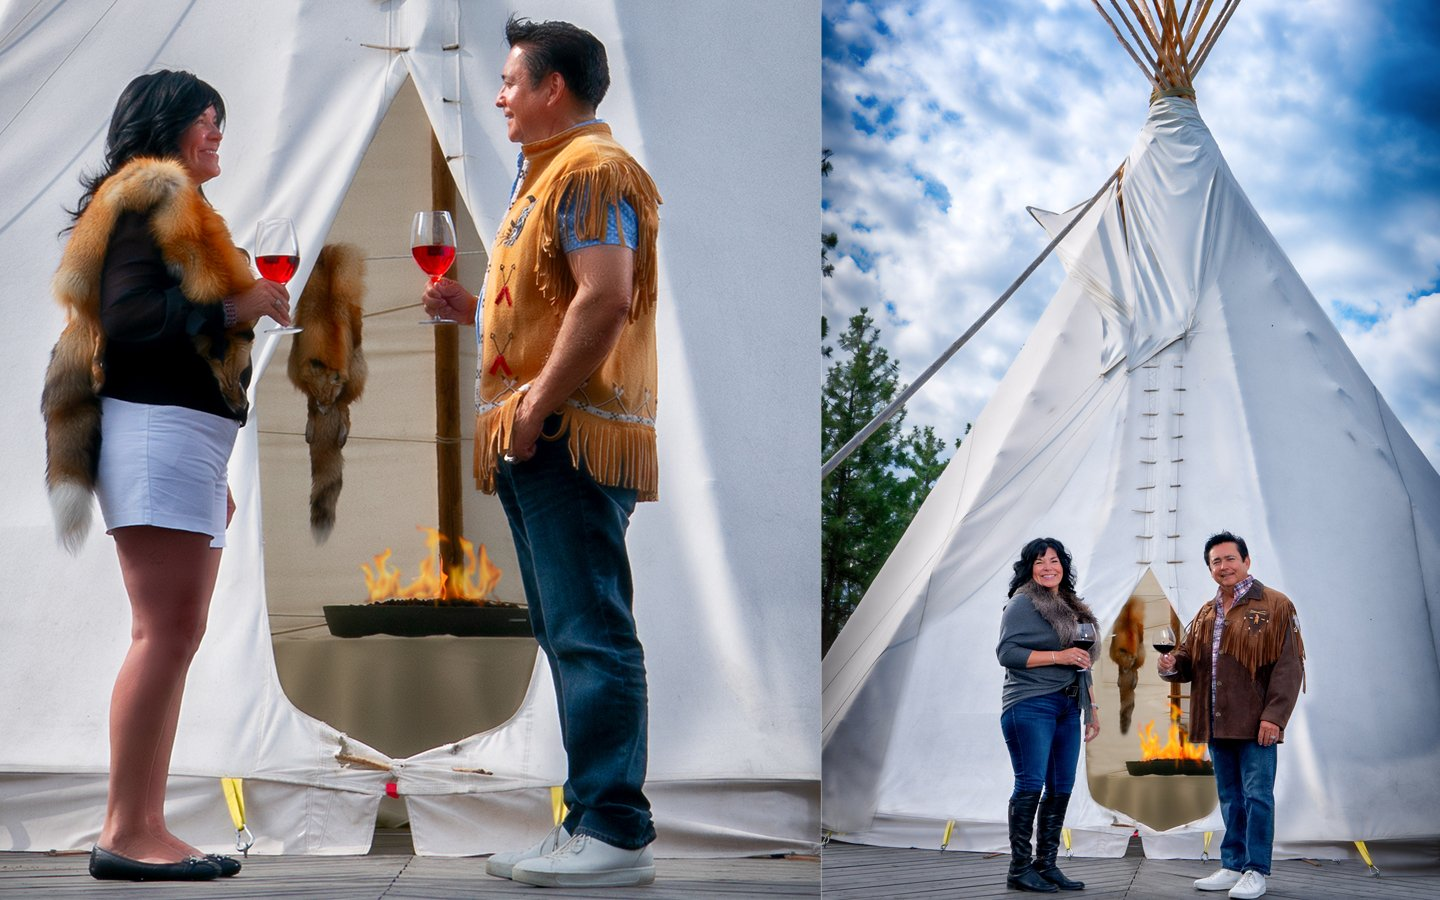 https://spatulamedia.ca/wp-content/uploads/2019/05/robert-and-bernice-louie-at-teepee.jpg